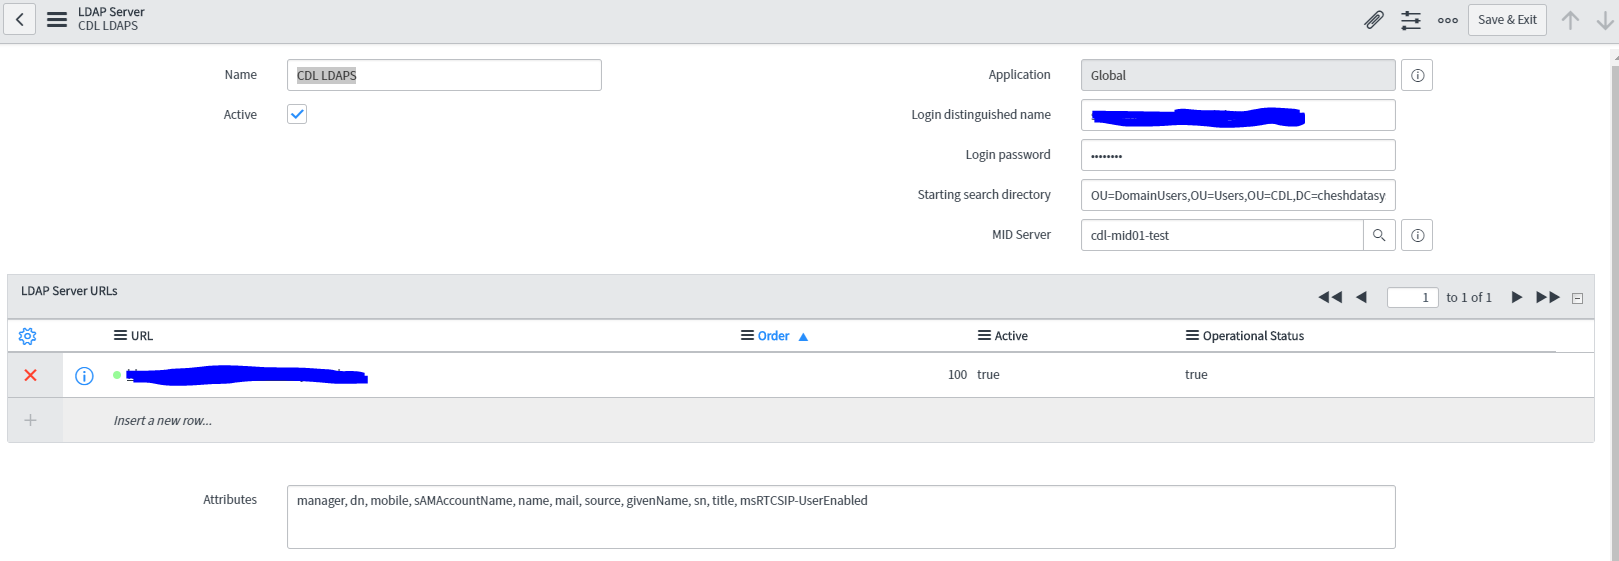 Getting users Managers to import from LDAP  - Service